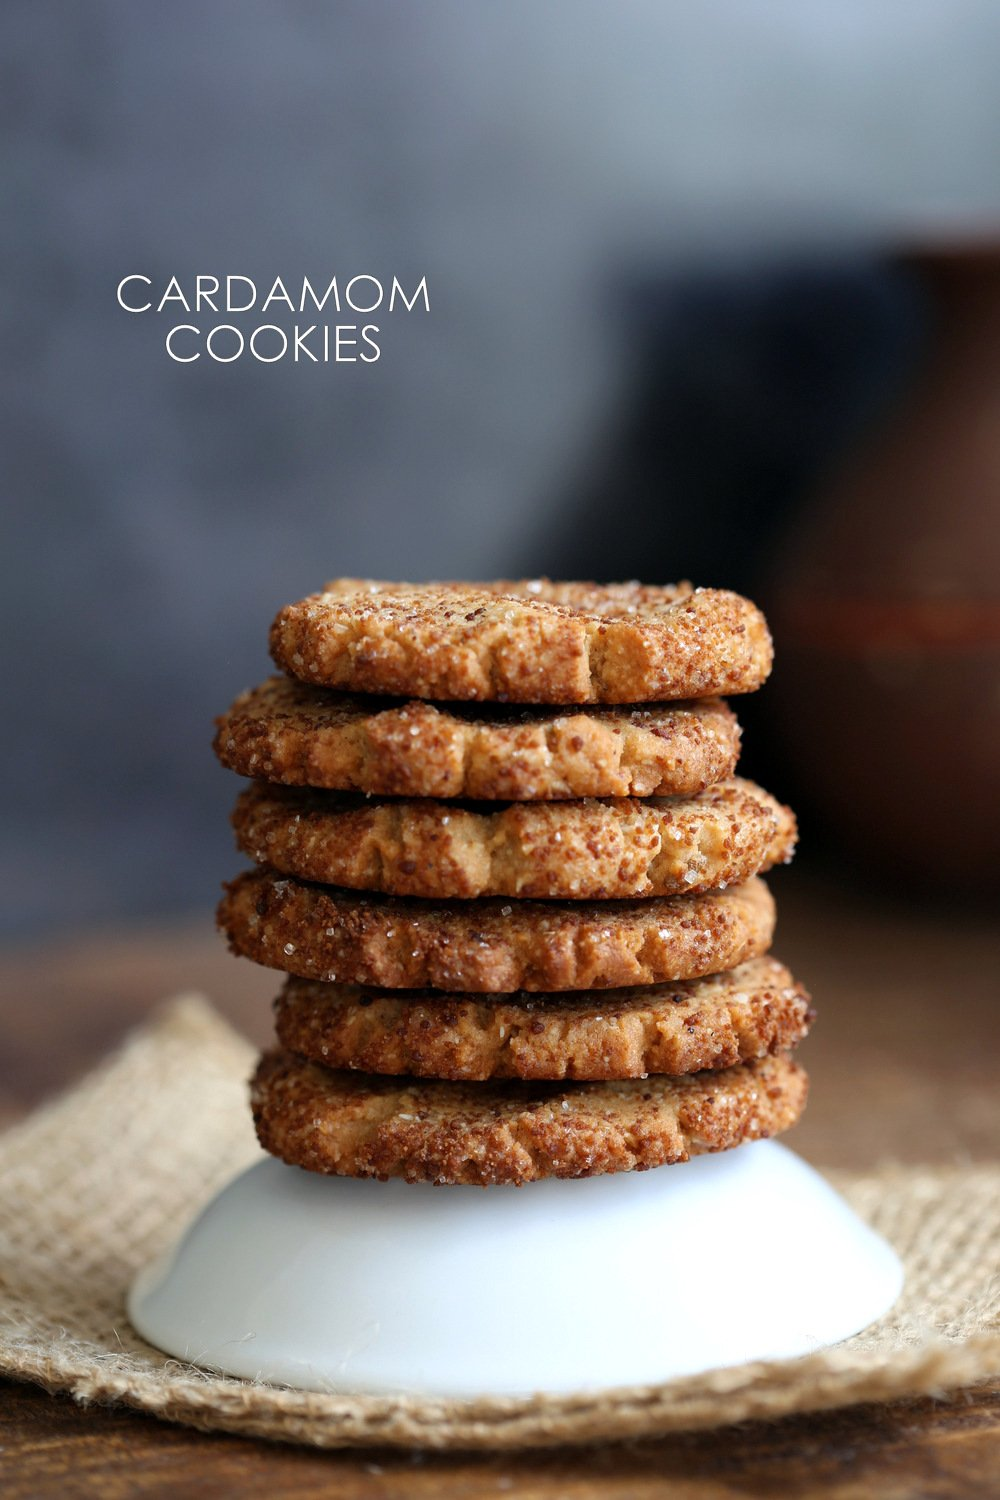 Easy Vegan Cardamom Cookies. These soft cookies are a cross between cardamom shortbread and snickerdoodles. #Vegan #Soyfree #palmoilfree #Recipe. #Glutenfree option.